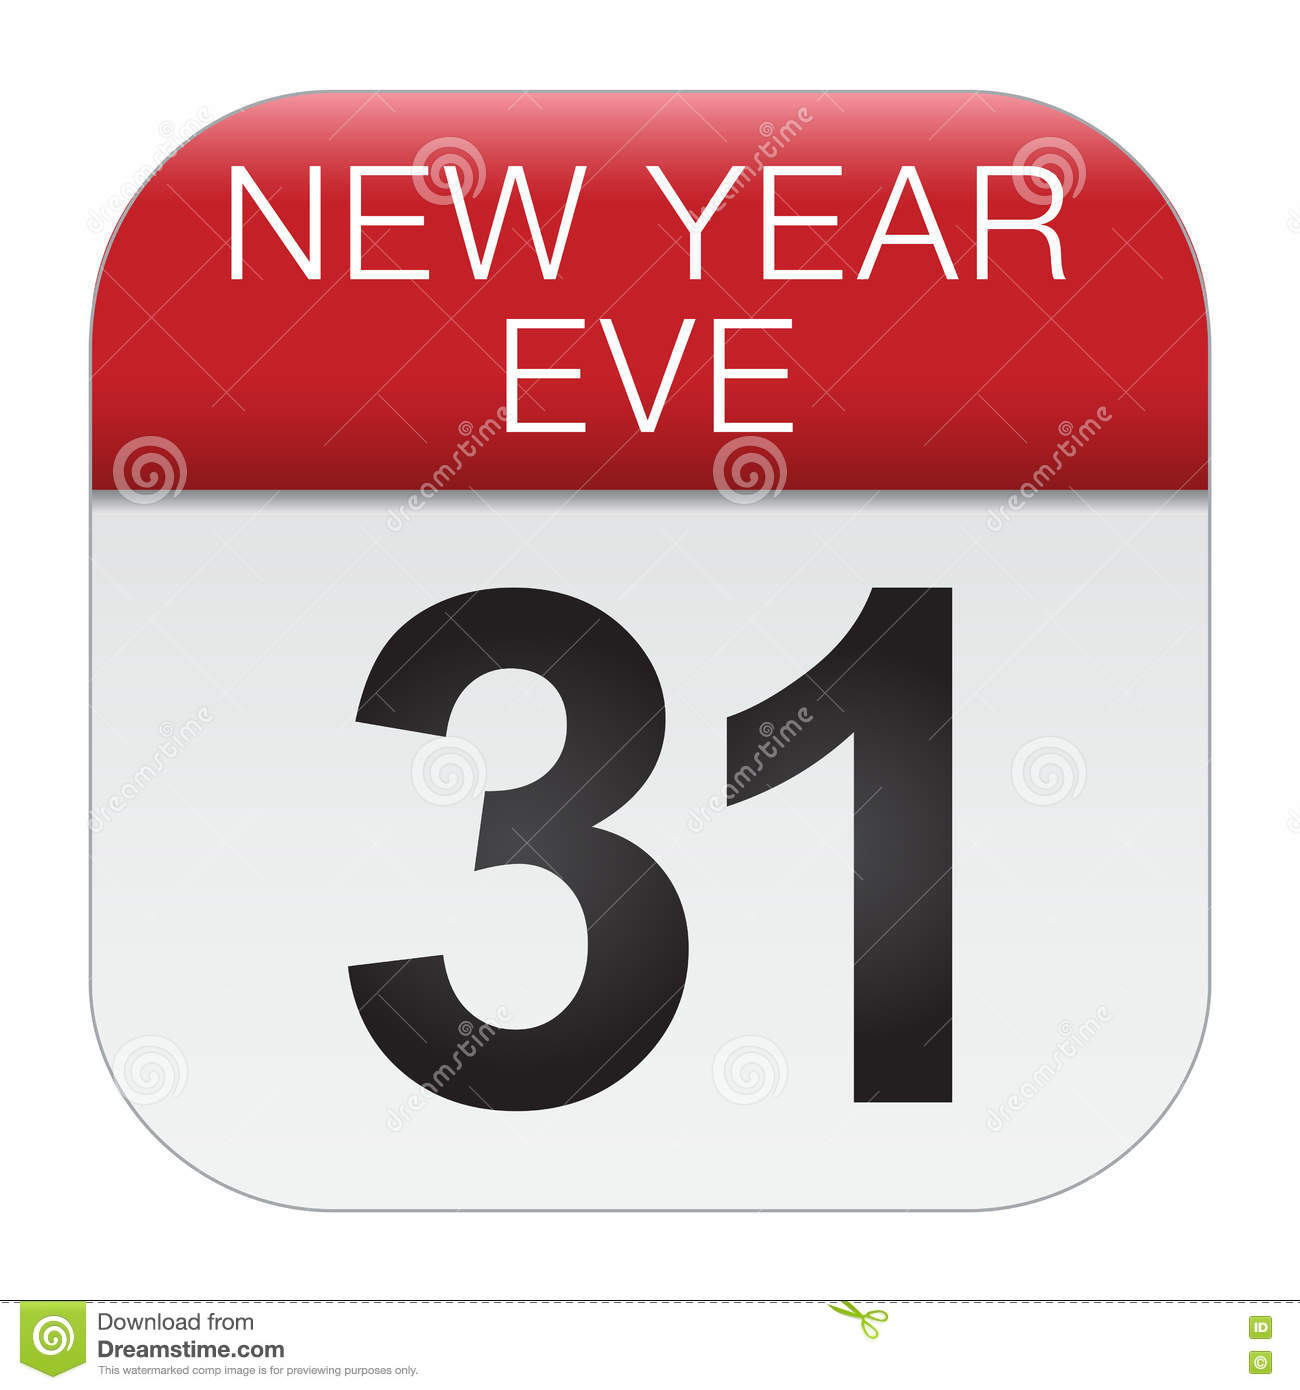 new year eve vector design